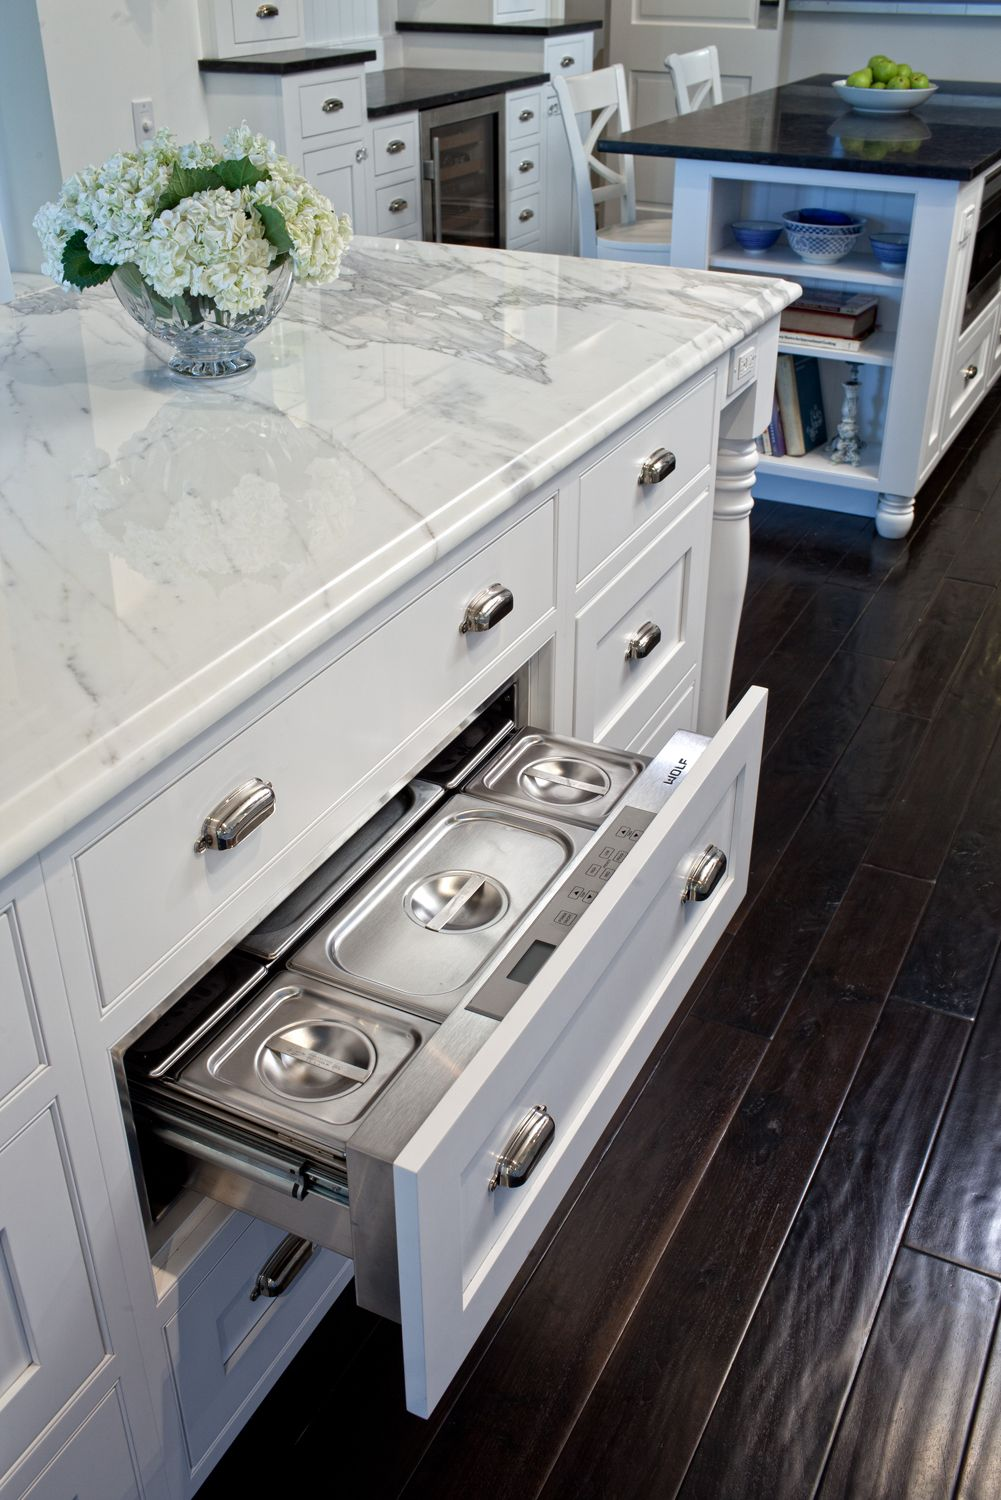 Refrigerated storage drawer, White cabinets, white marble counter ...